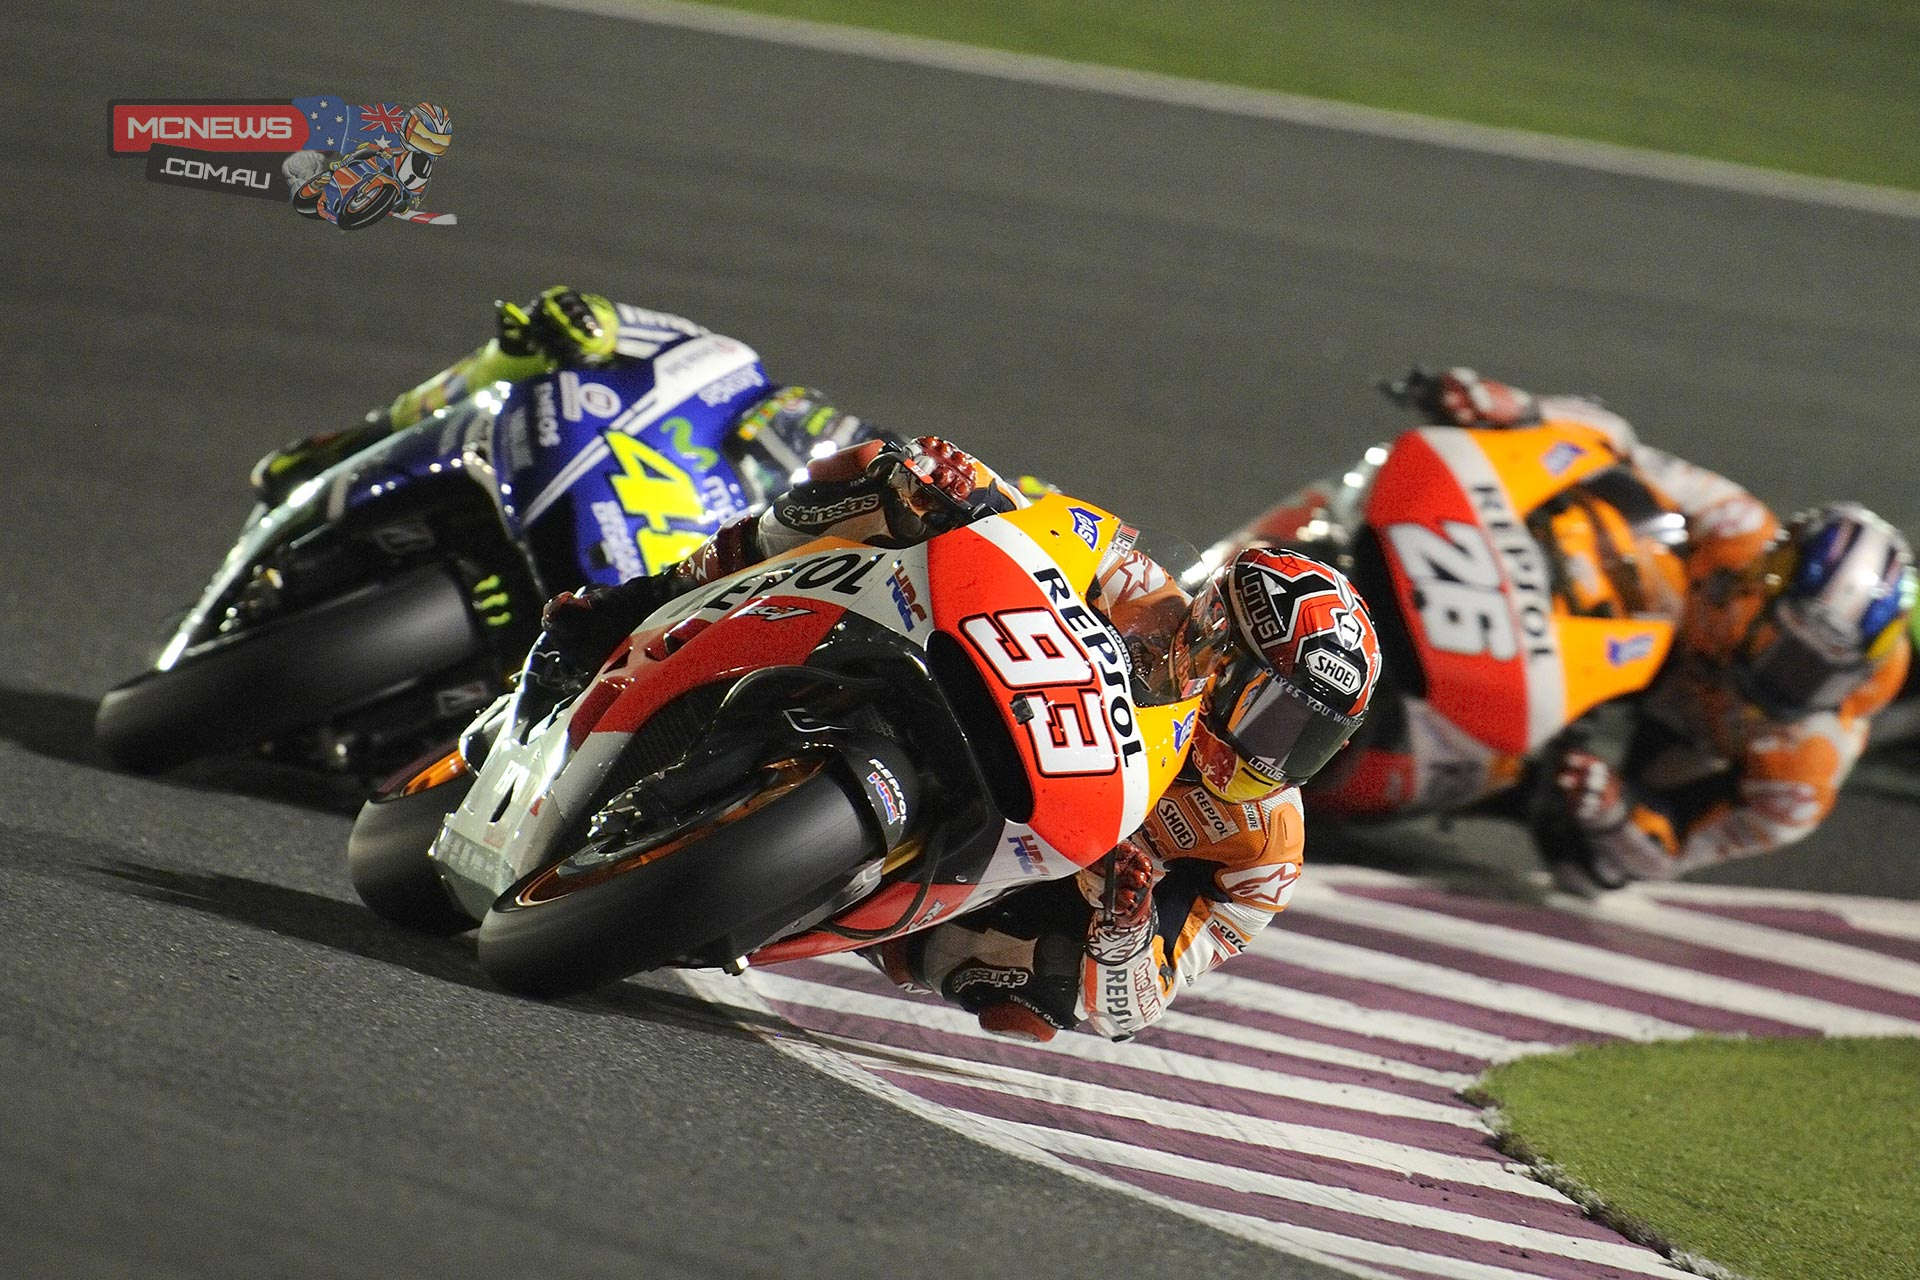 Marquez leads Rossi and Pedrosa in Qatar